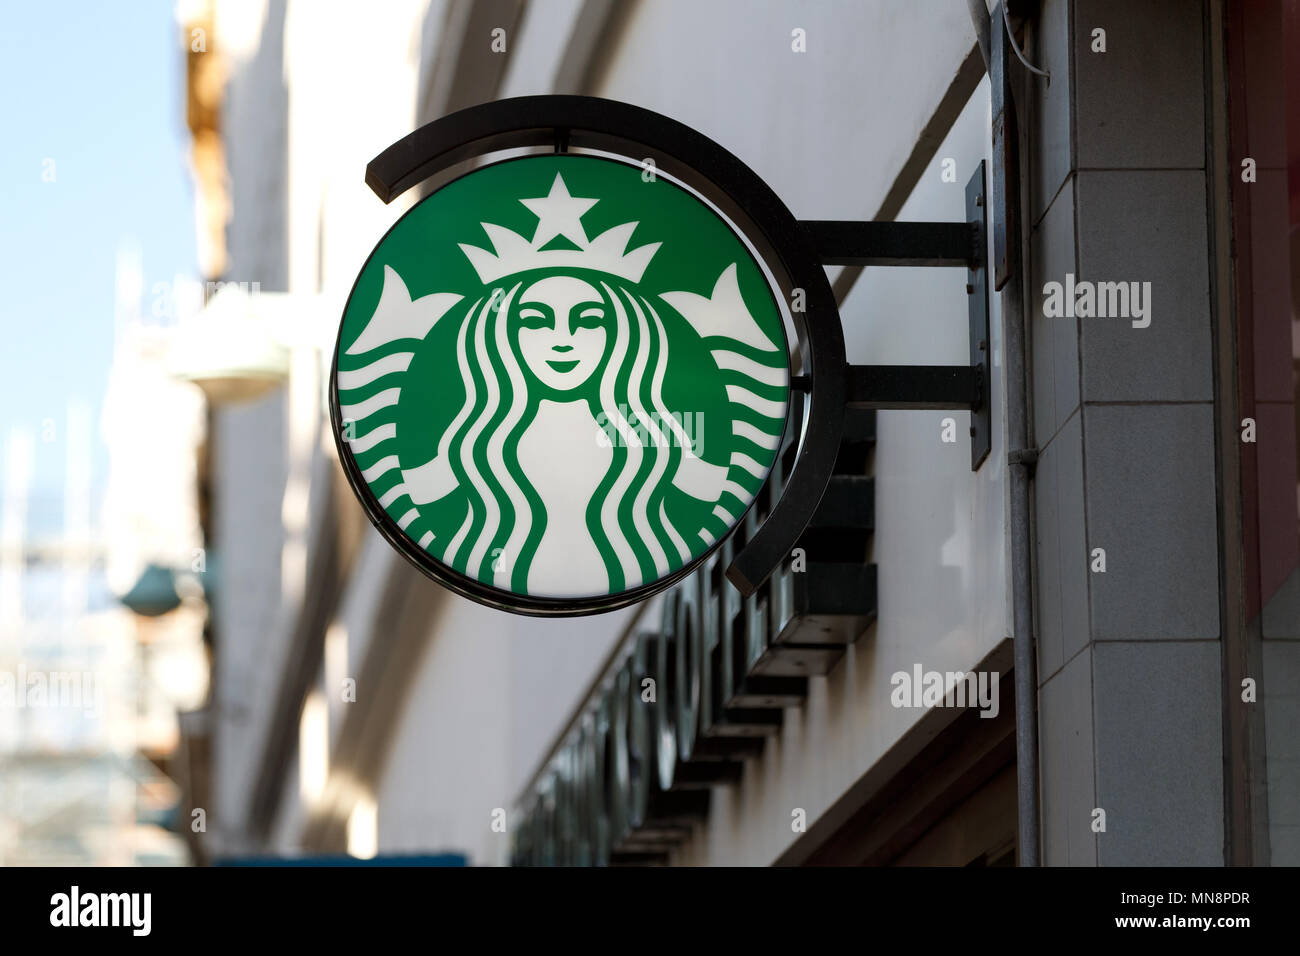 Starbucks Logo Stock Photos Starbucks Logo Stock Images Alamy